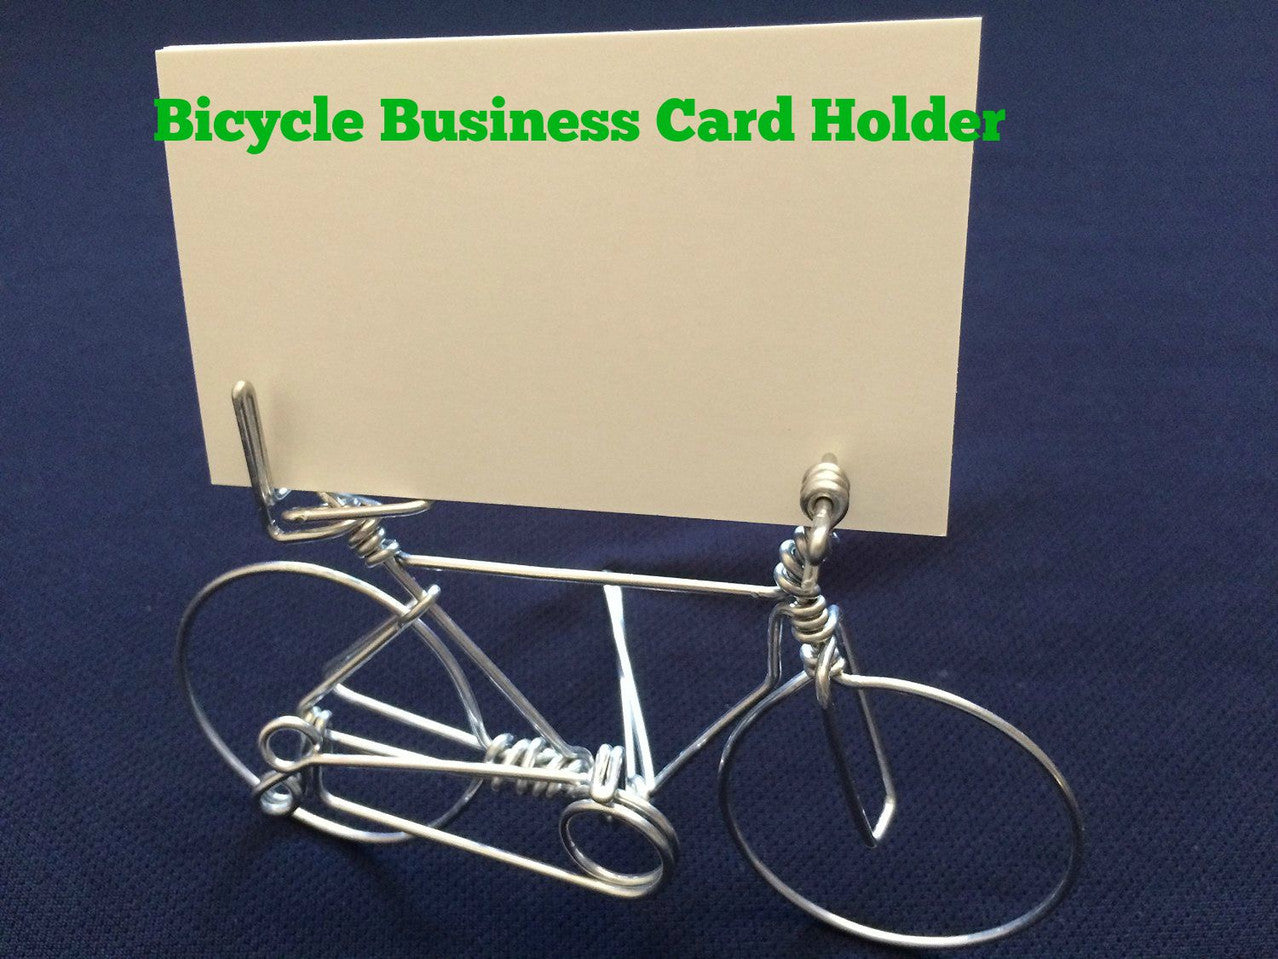 Bicycle Business Card Holder